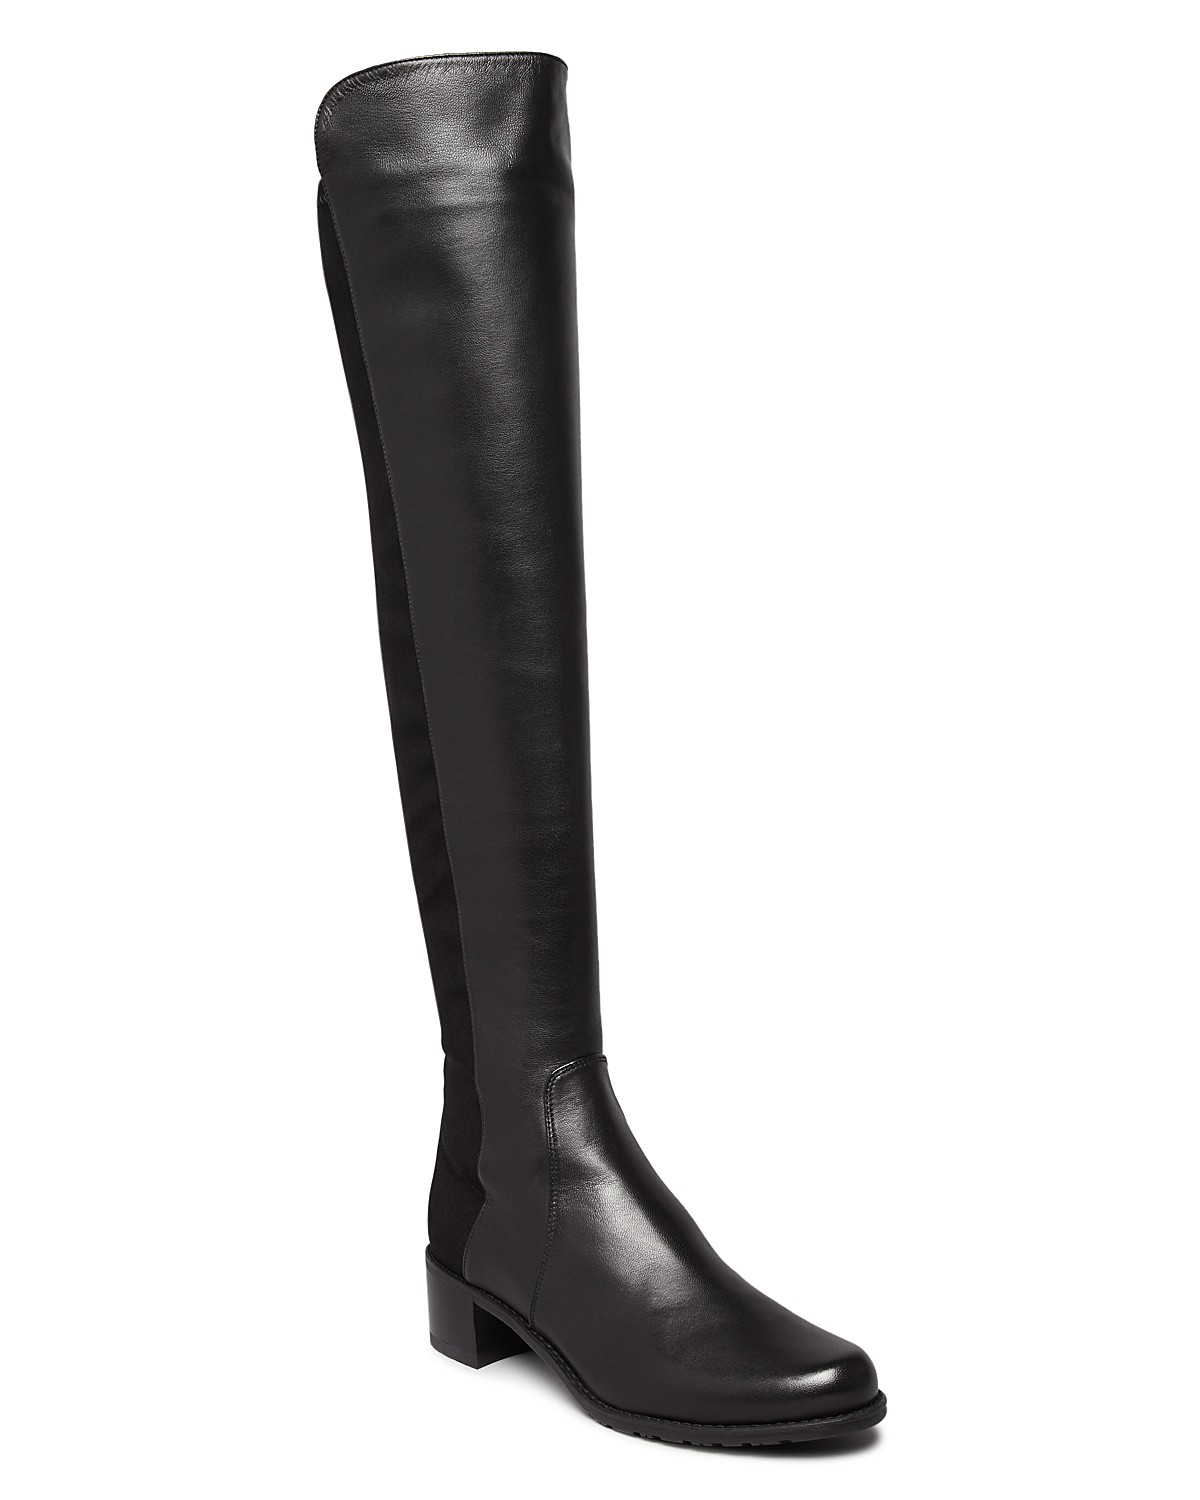 Stuart Weitzman Reserve Leather Over-the-Knee Boot (Women's) VlInVtih